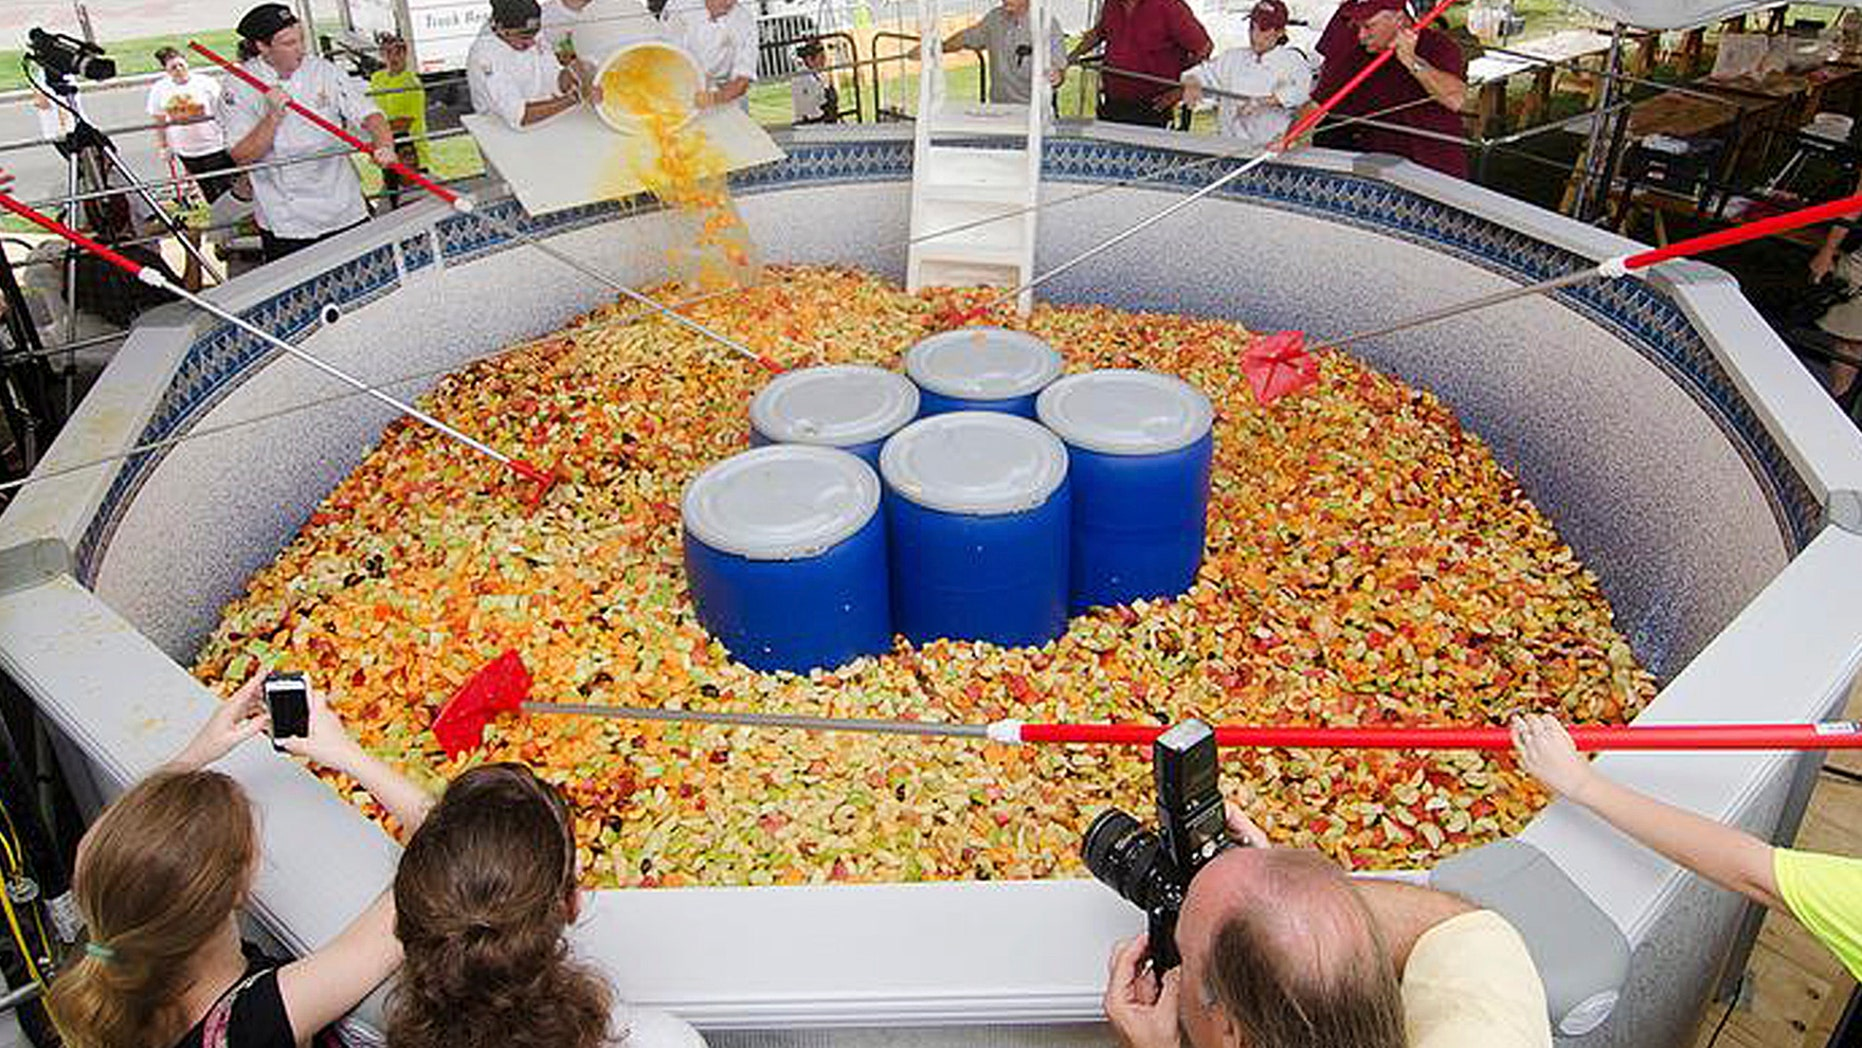 This Monday, Sept. 2, 2013 photo released on the University of Massachusetts, Amherst media relations website shows a fruit salad prepared on campus, and weighing more than 15,000 pounds. (AP Photo/University of Massachusetts, Amherst)